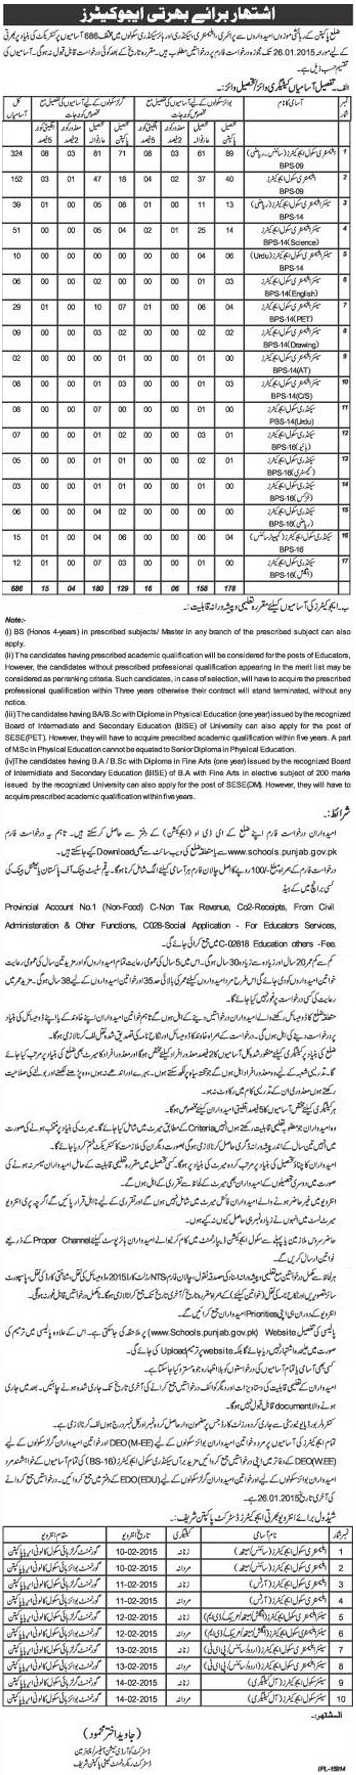 District Pakpattan Educators Teachers Jobs 2016 Contract Based Application Form Eligibility Last Date